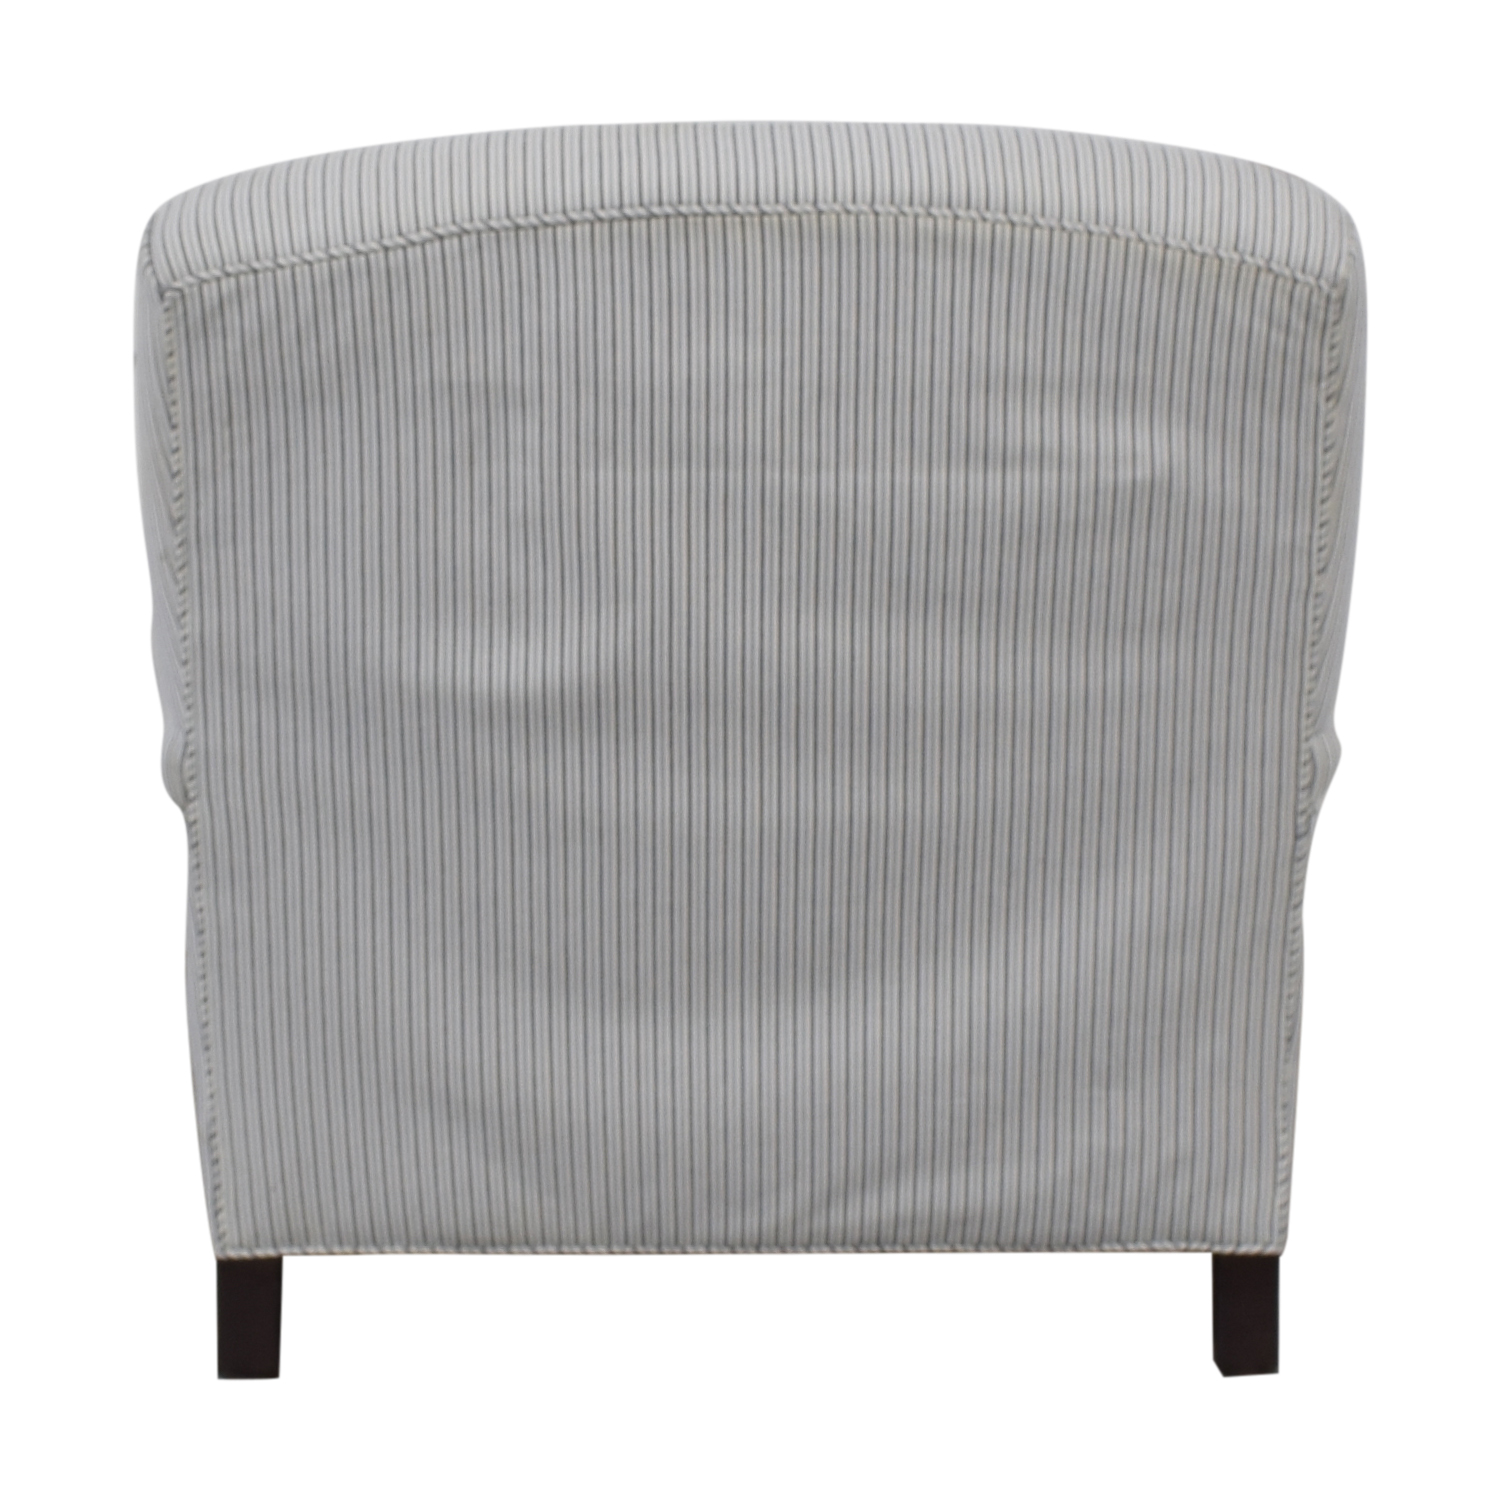 Serena & Lily Serena & Lily Miramar Upholstered Side Chair blue